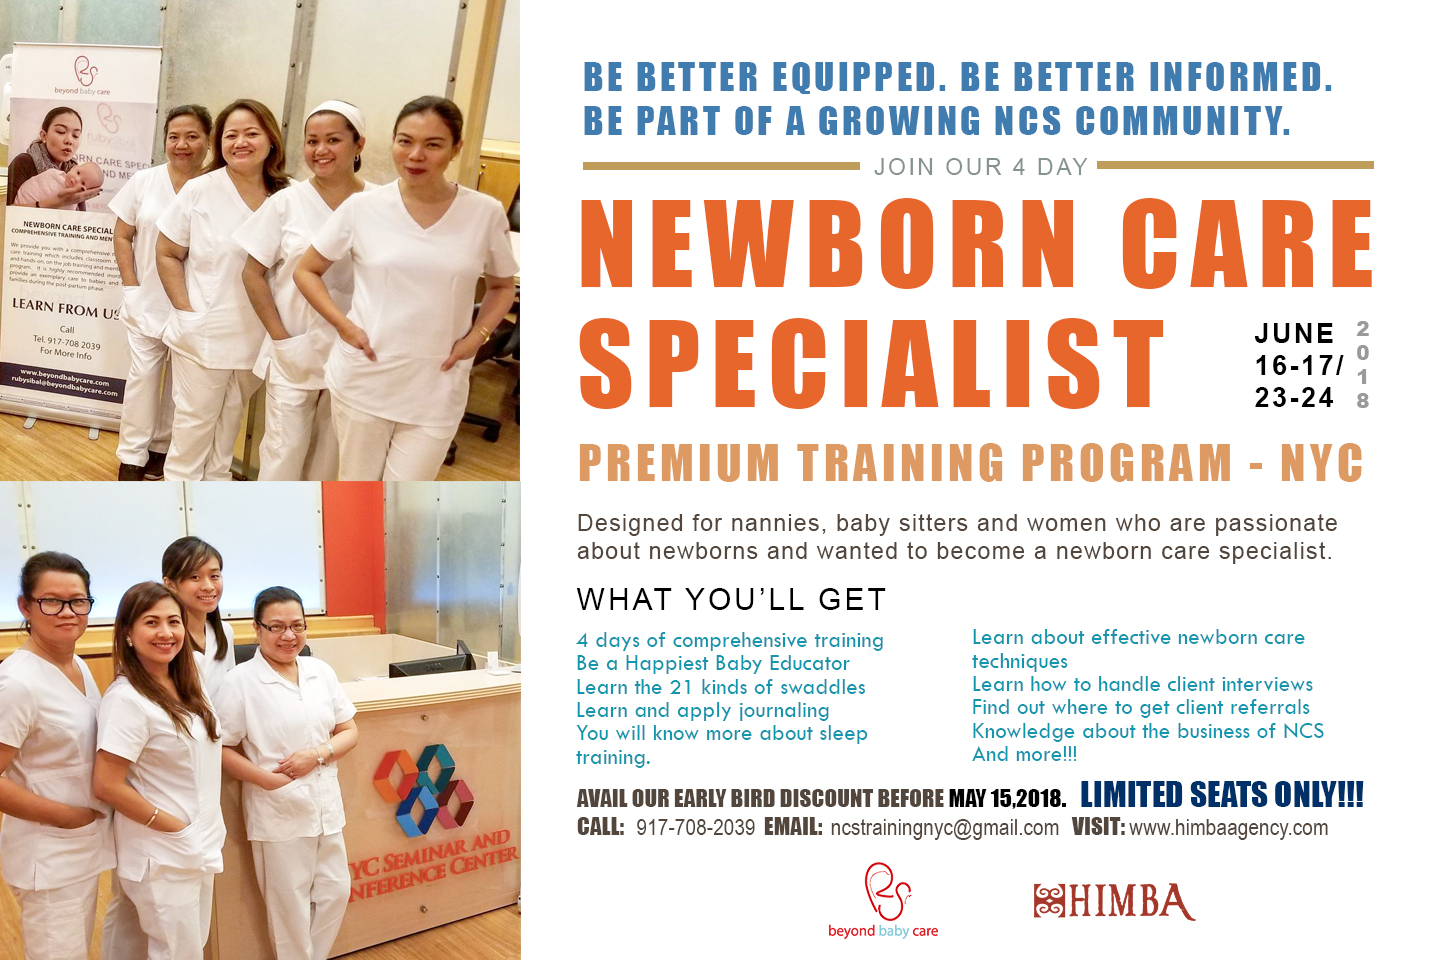 Newborn Care Specialist Training NYC June 2018